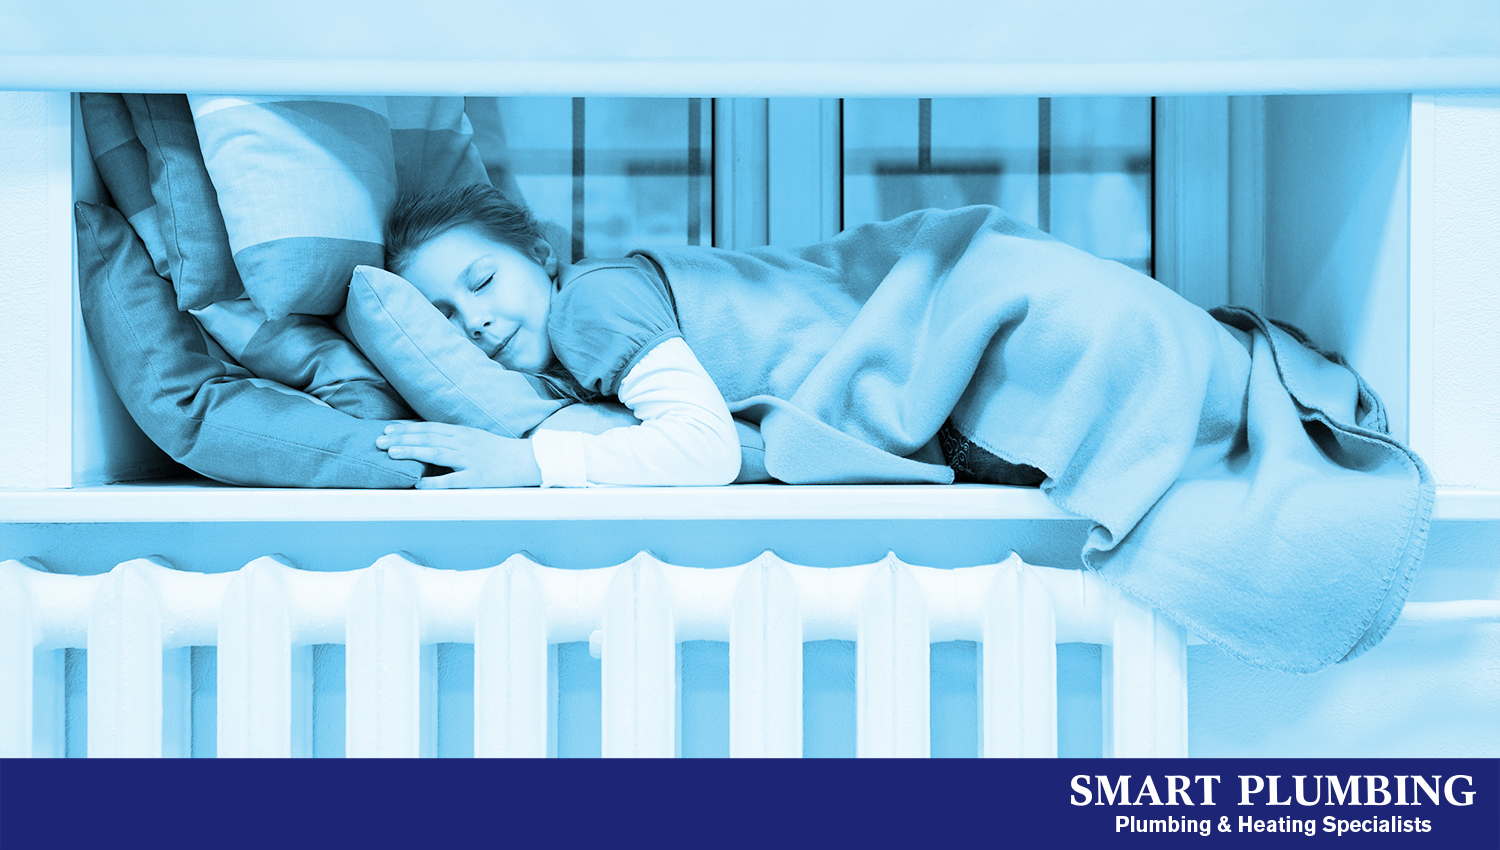 Smart Plumbing - Keeping You Warm